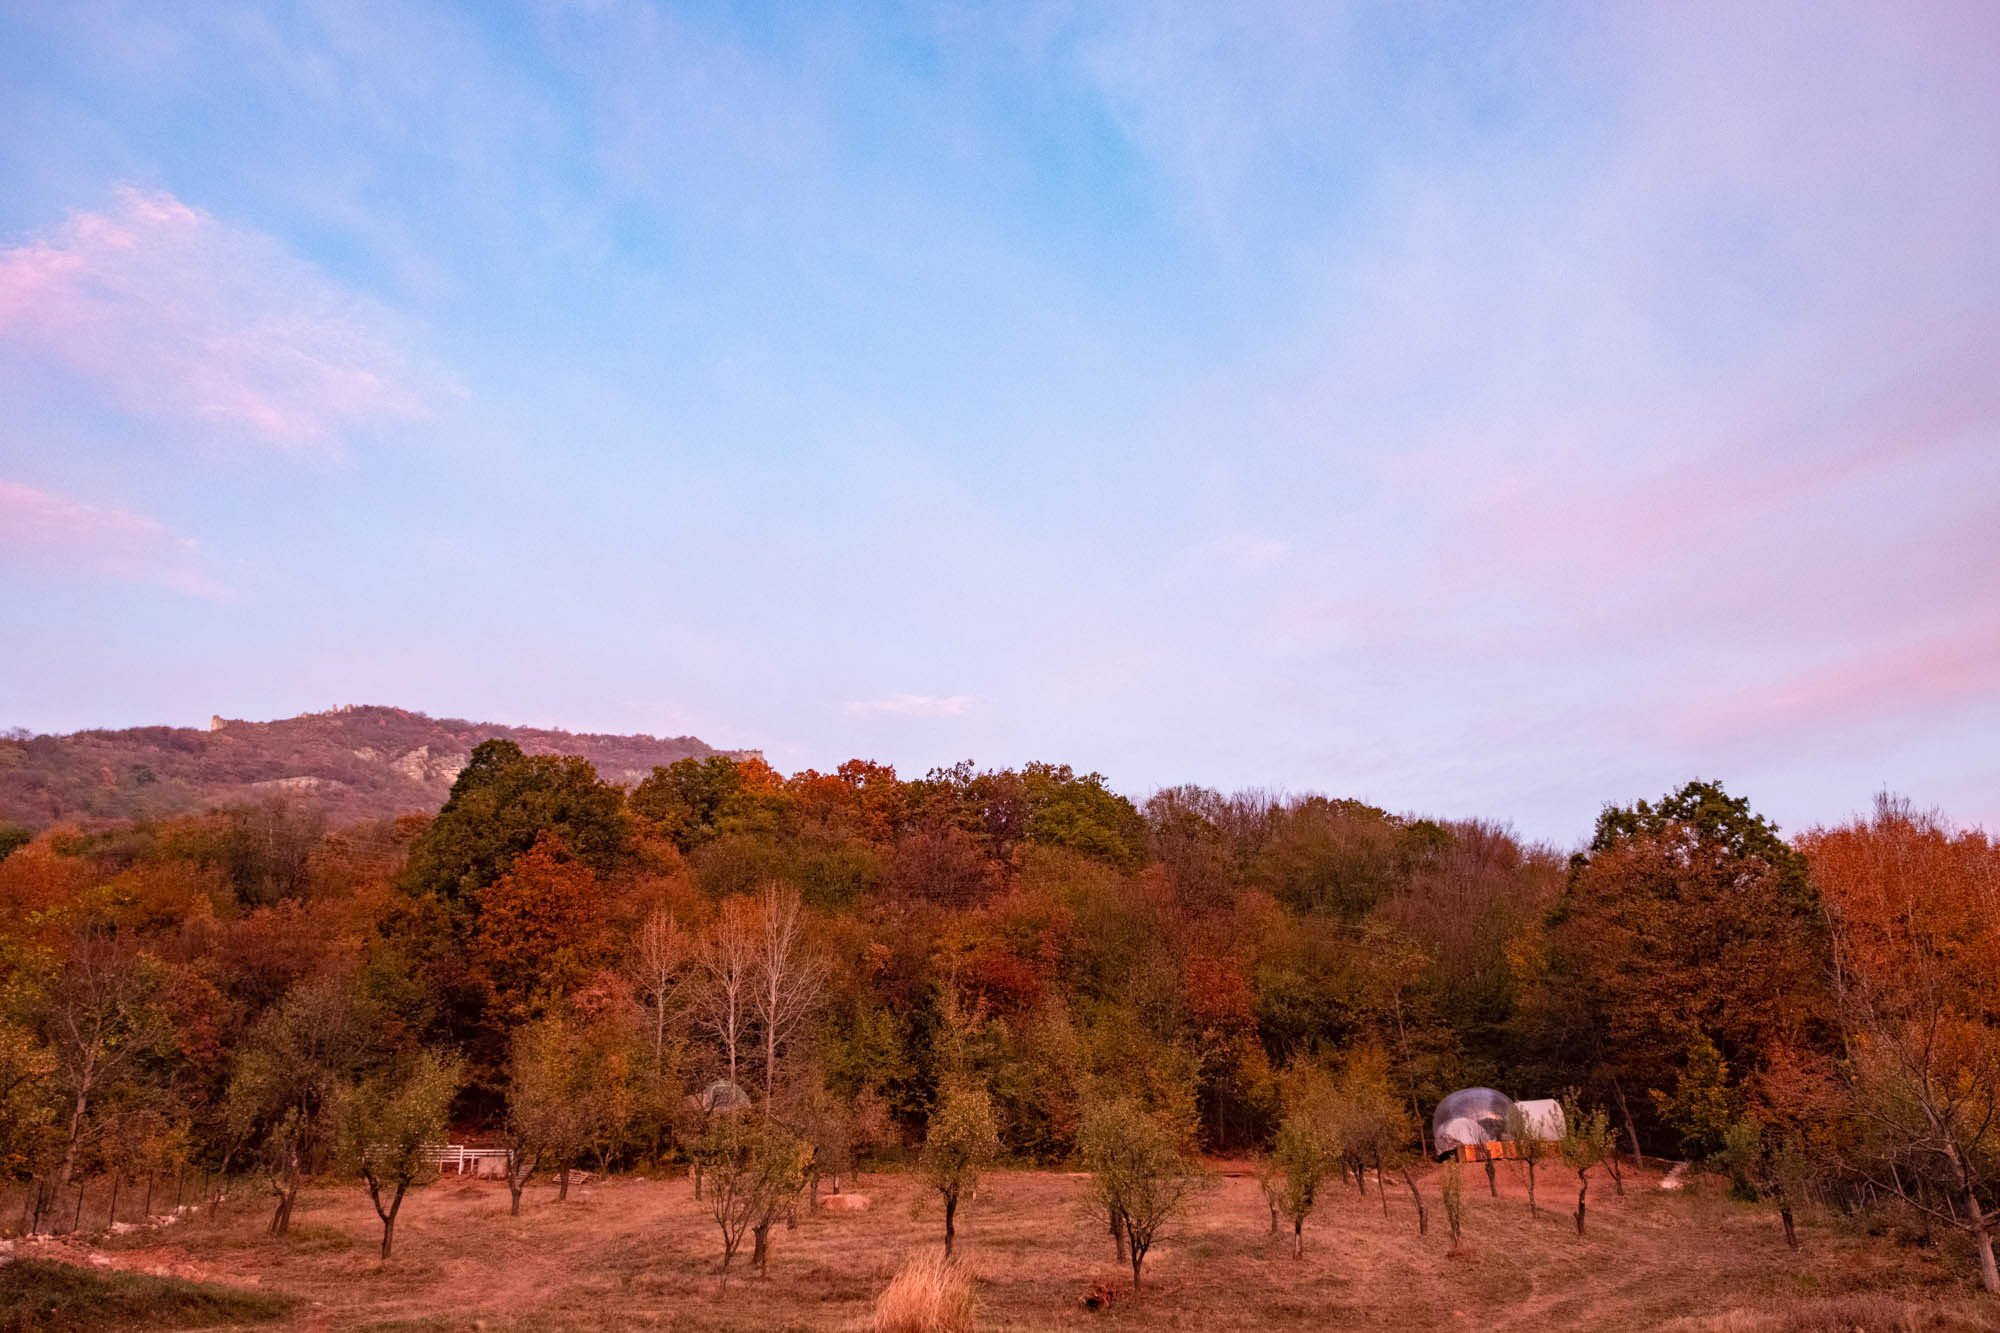 mountains of vratsa, bubble tent in autumn